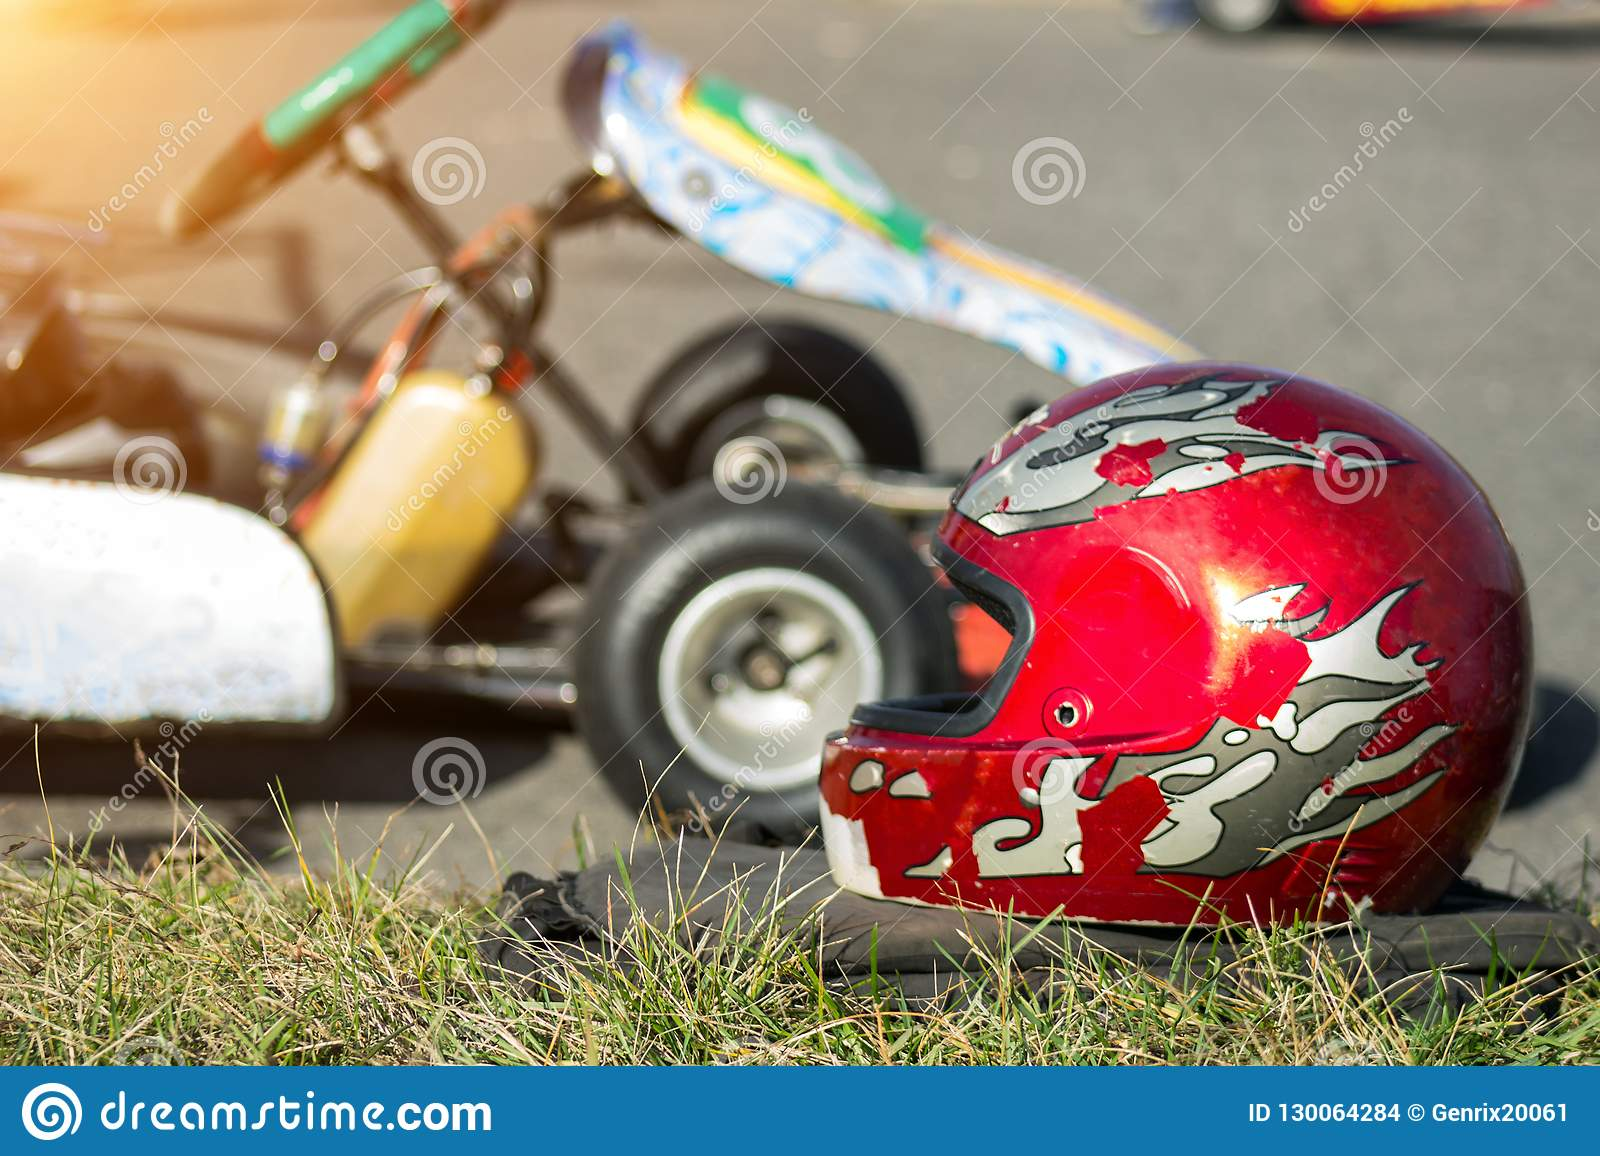 Karting competitions, a red protective helmet lies against the background of the racing carting, close-up